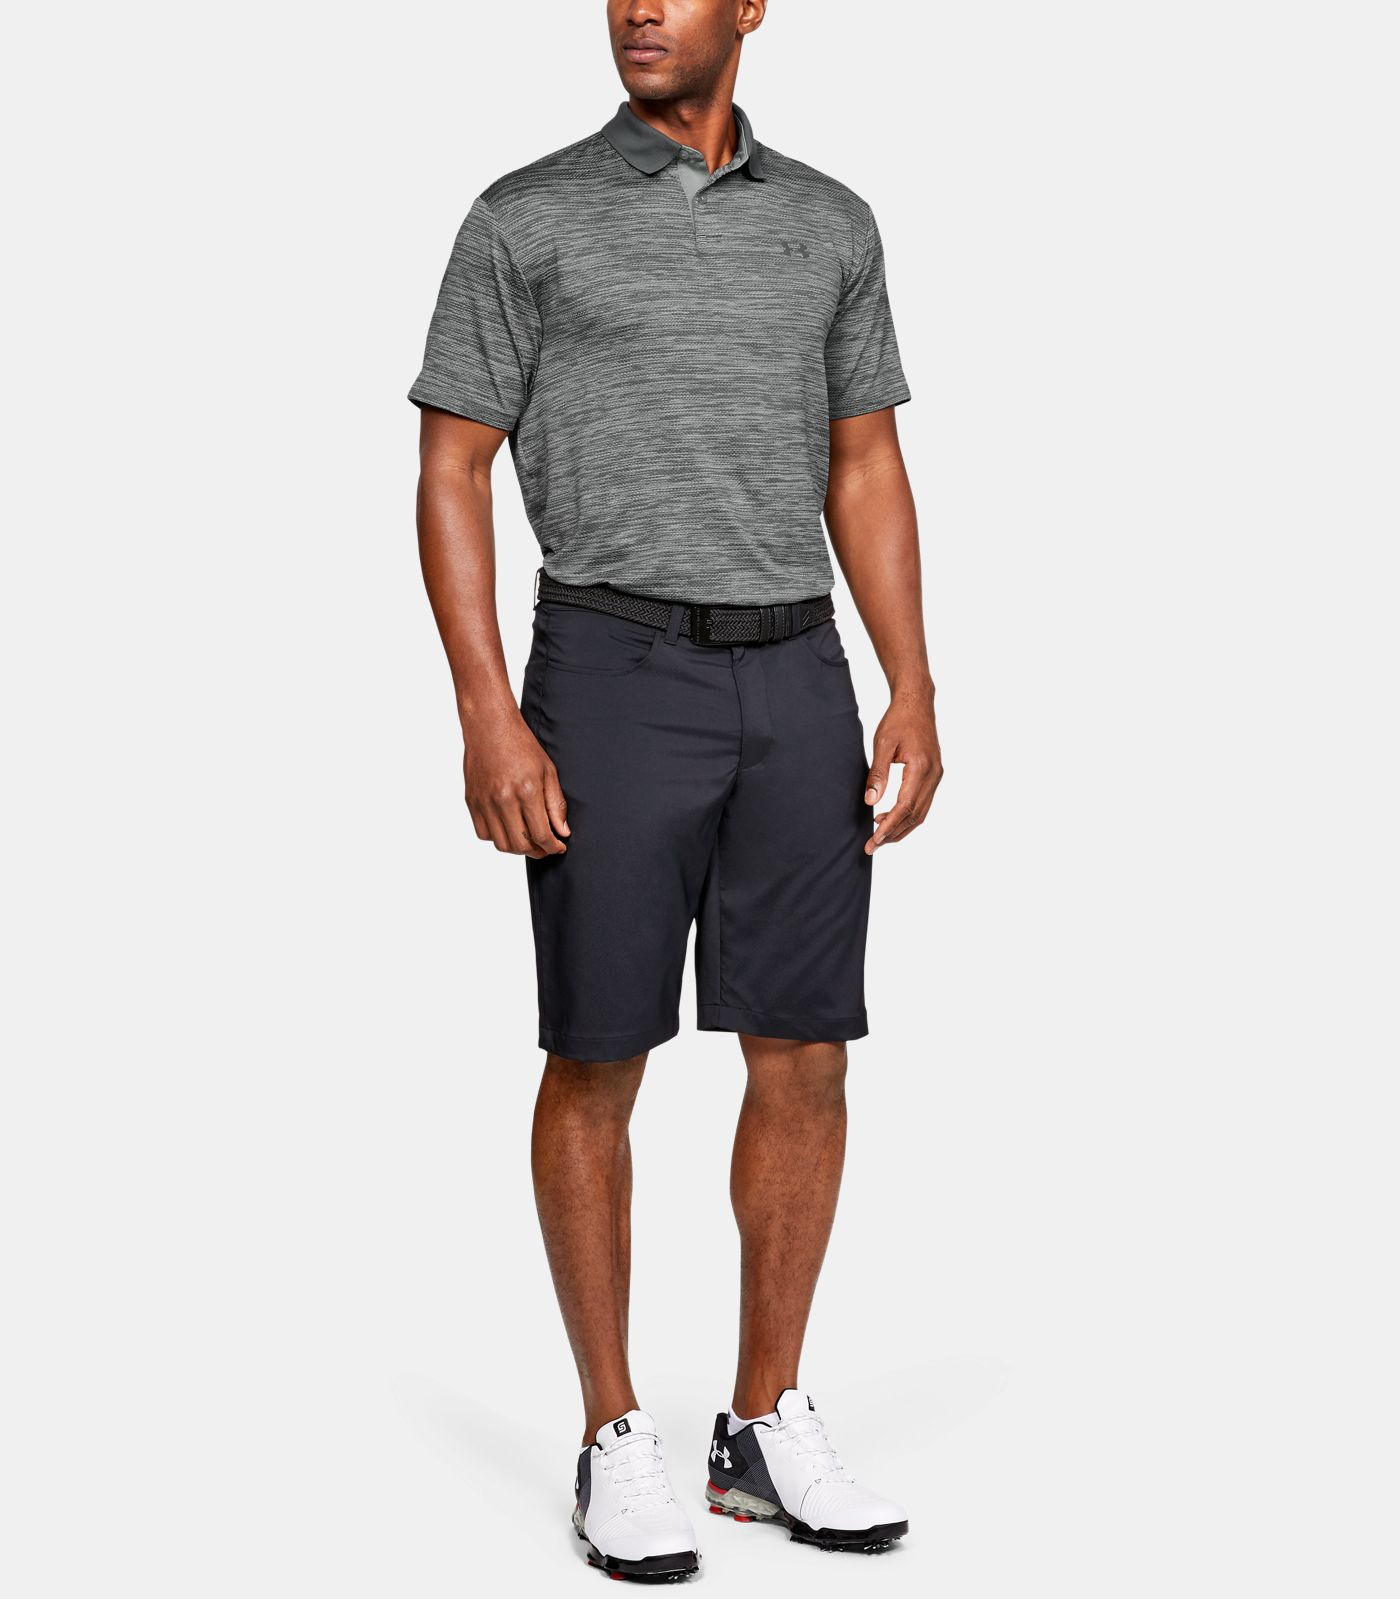 MENS_POLO_PerformanceTextured_UAR1342080035_03